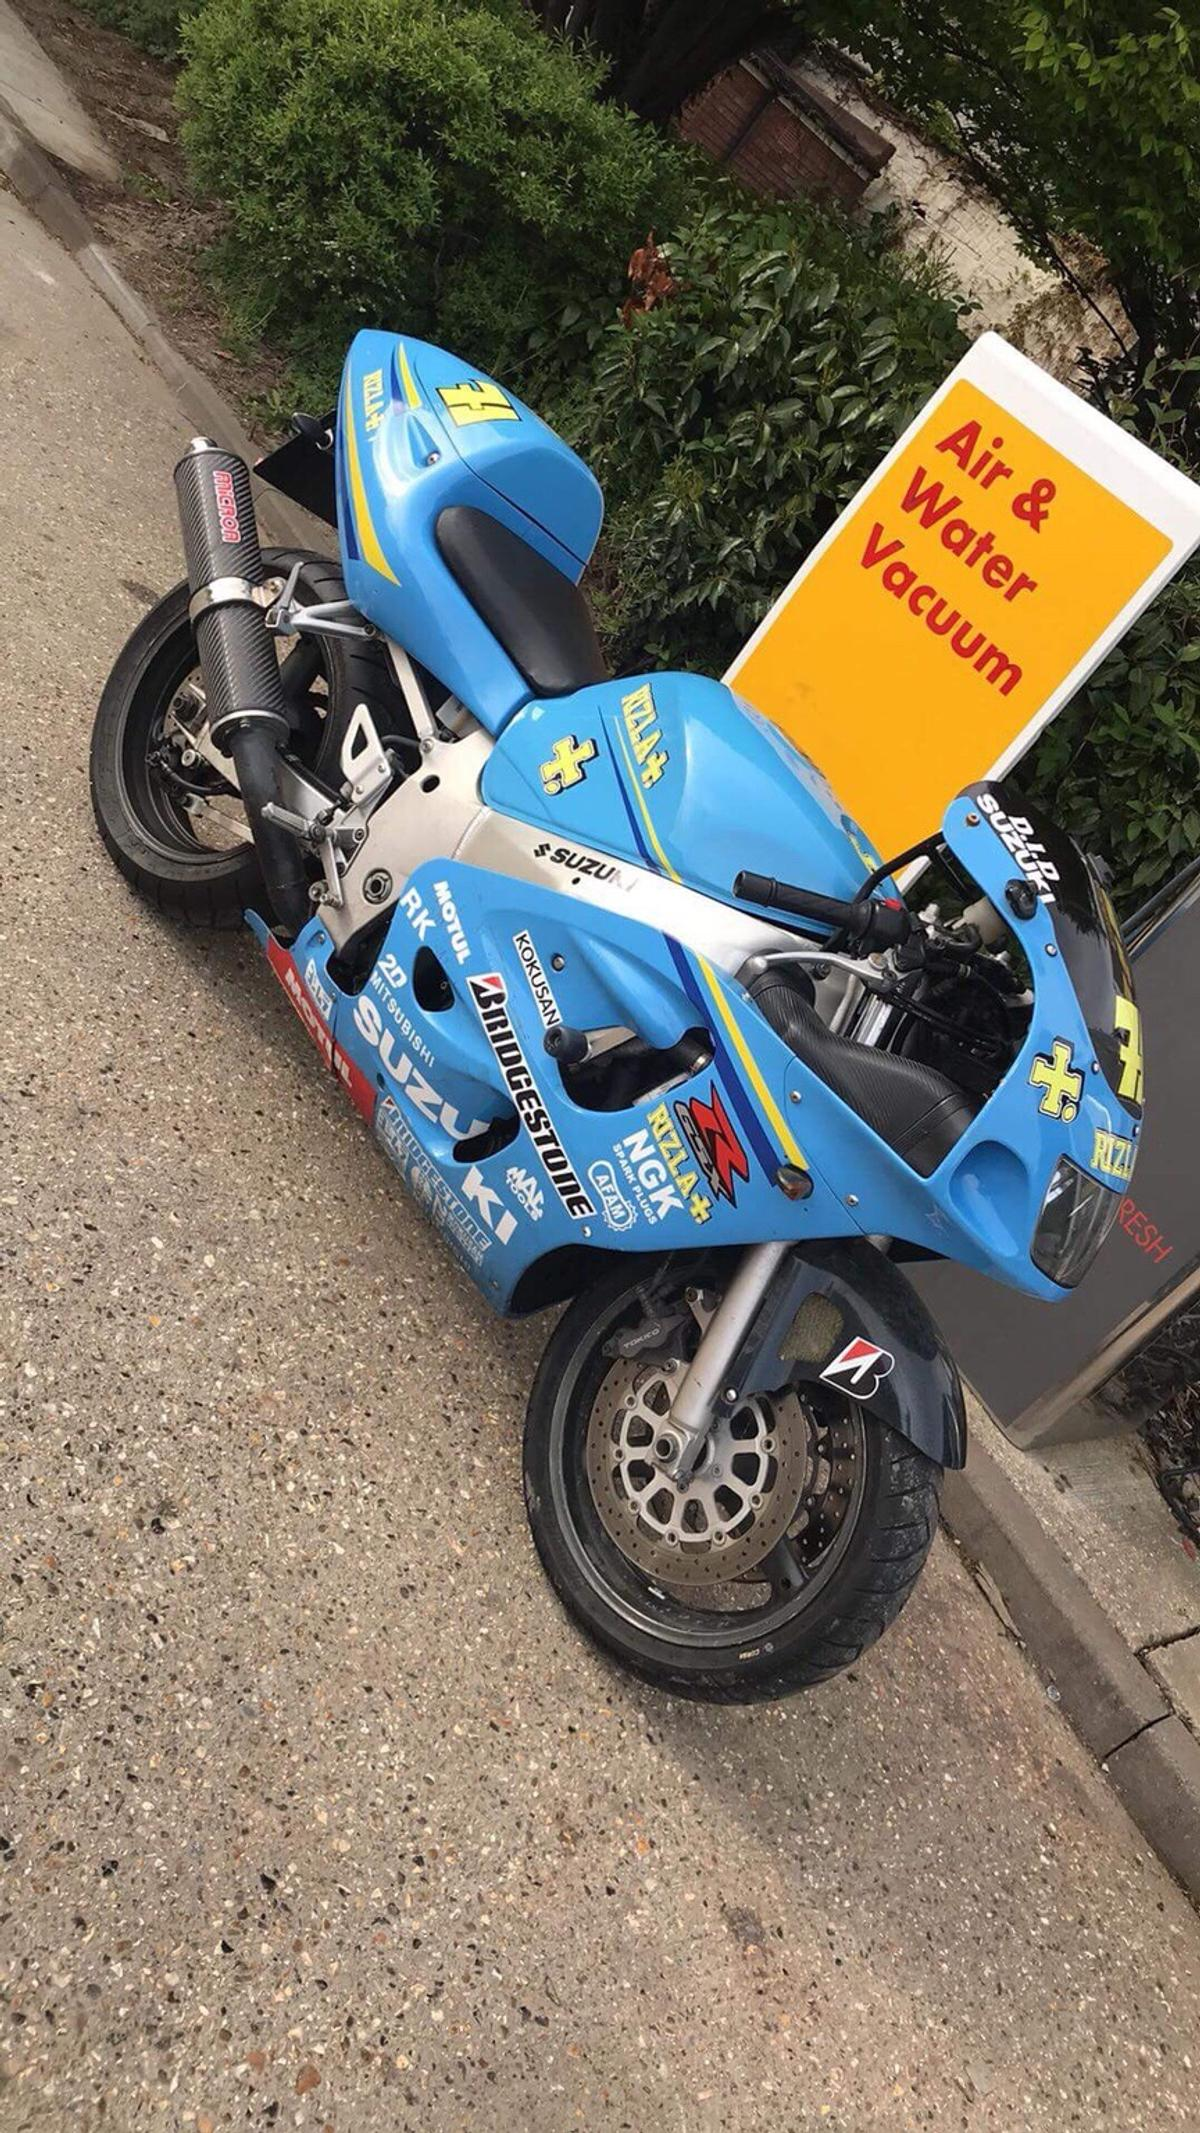 Gsxr srad 600 in Stratford-on-Avon for £750 00 for sale - Shpock